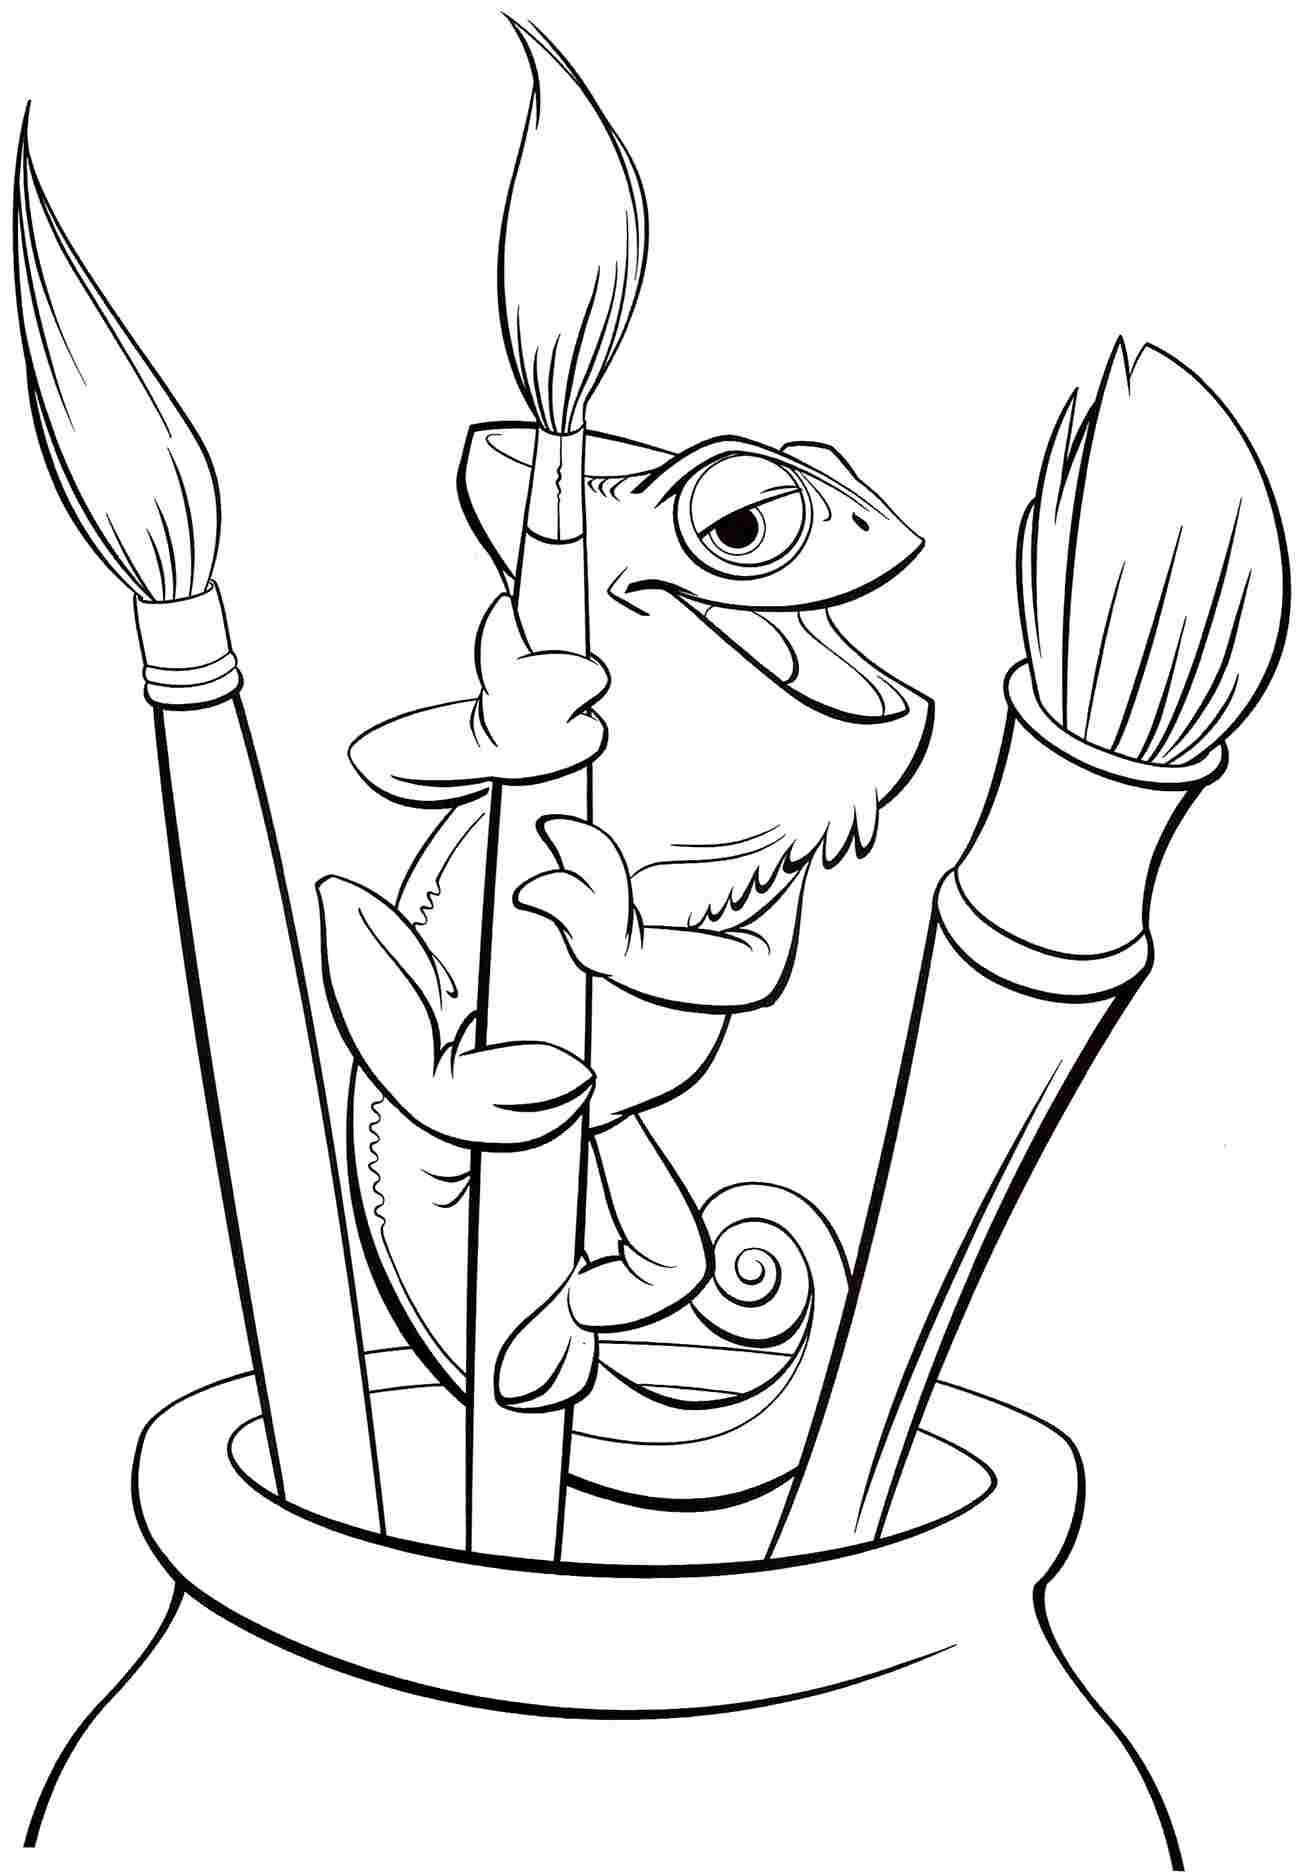 Free Printable Easter Coloring Pages App Ipad App Review Clip